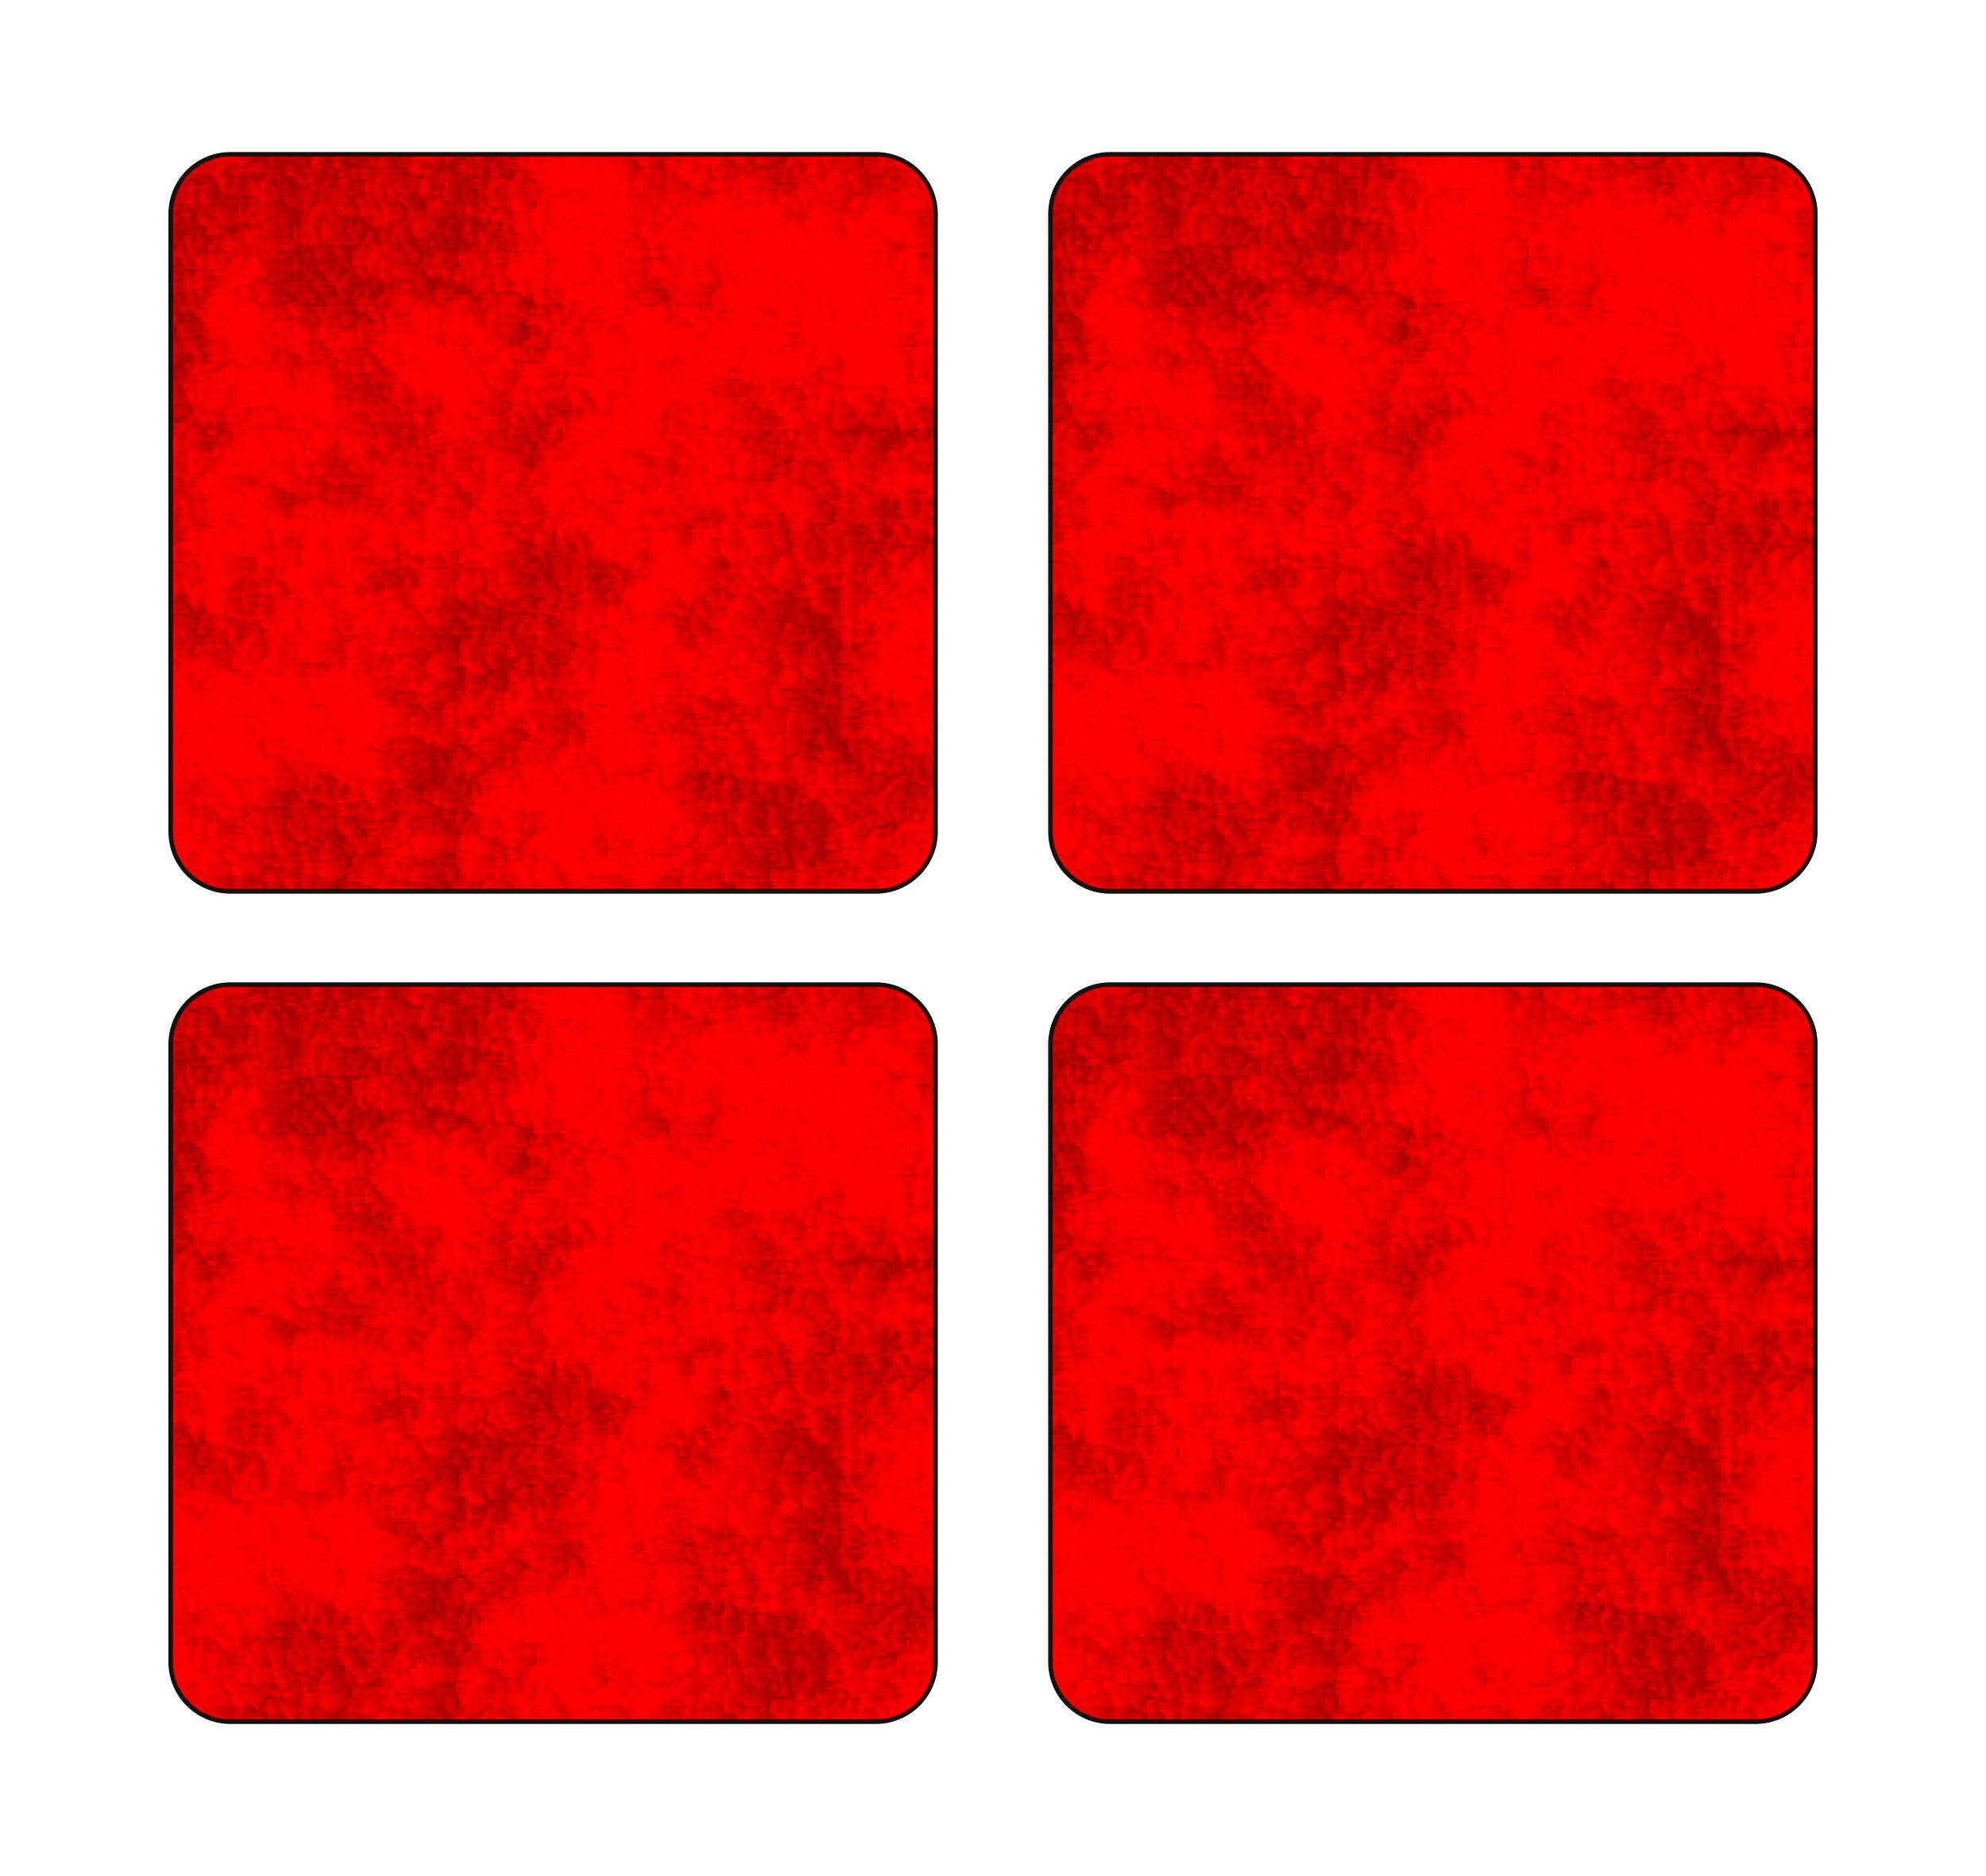 Sticker dimension holography-glow-reflectors 105 x 105 mm red 001